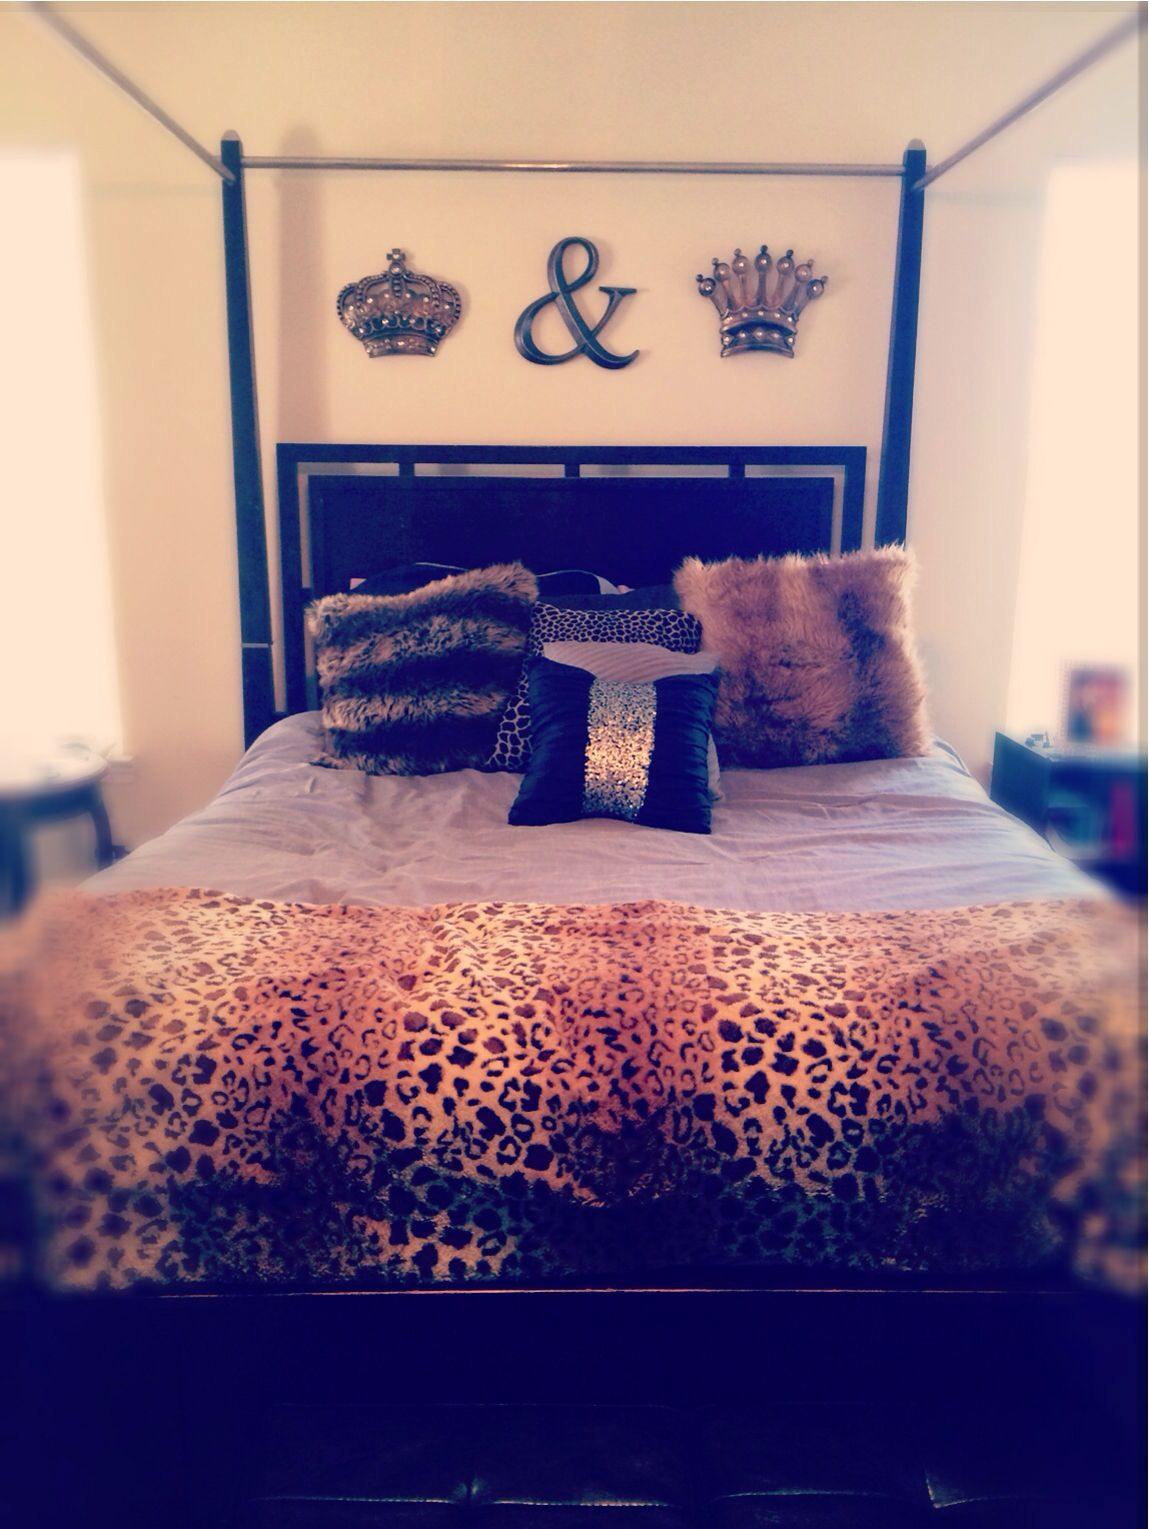 King And Queen Bedroom Decor Over Our Bed Now To Add Paint But I